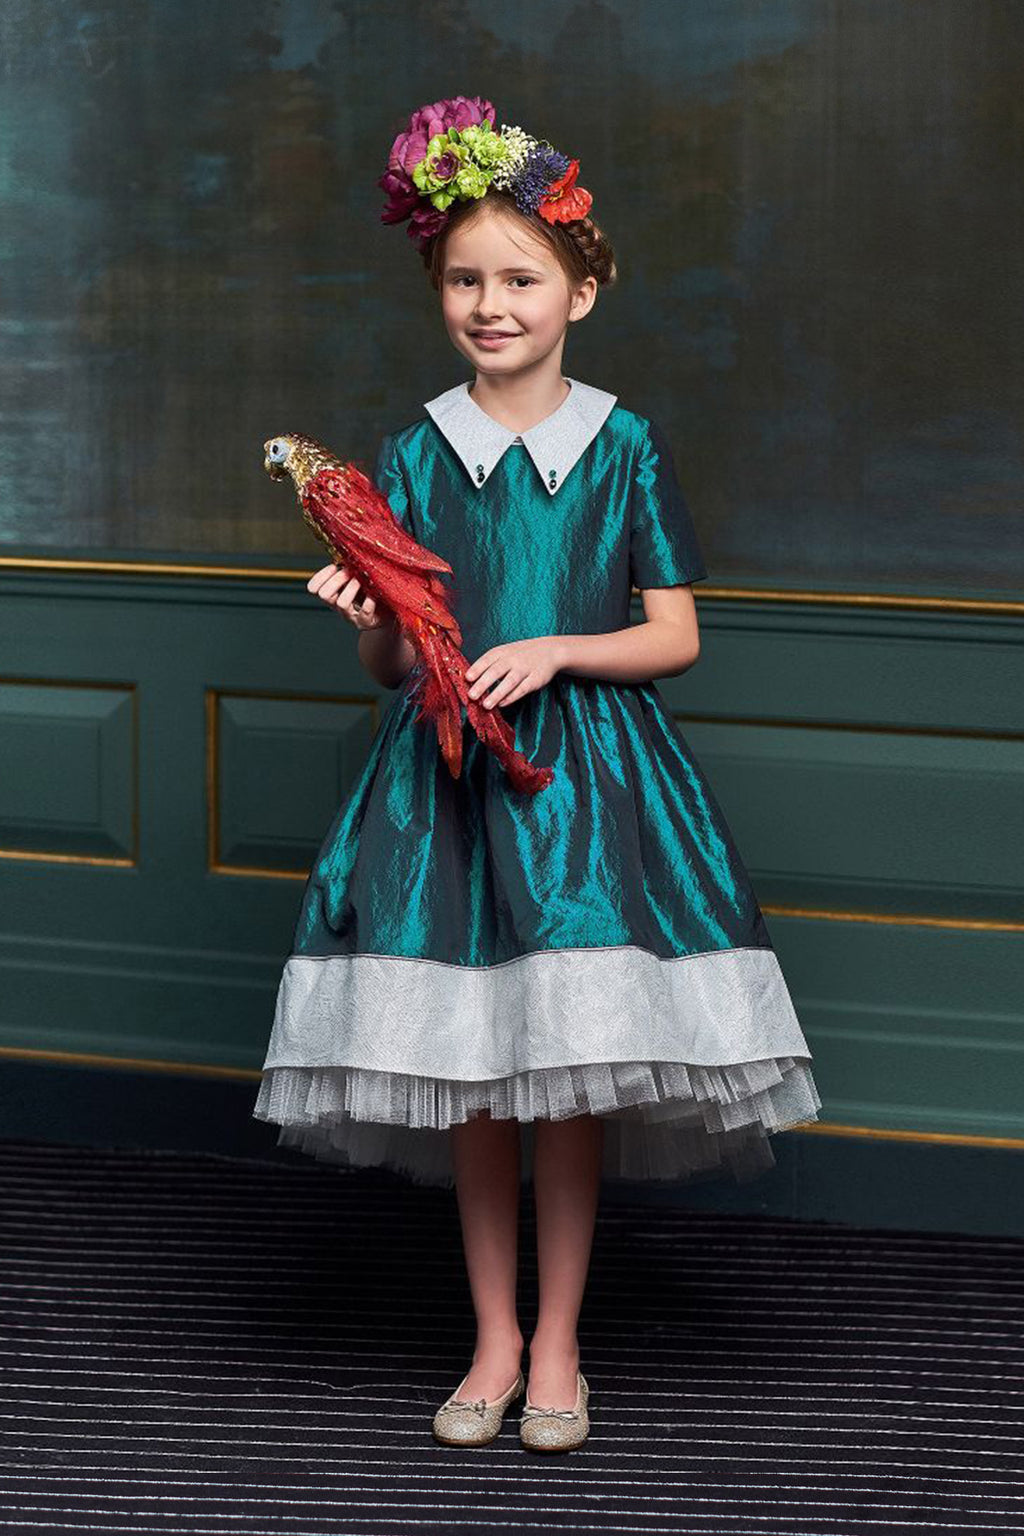 Ivy Teal & White Taffeta High-Low Girls Dress with Tulle Underskirt